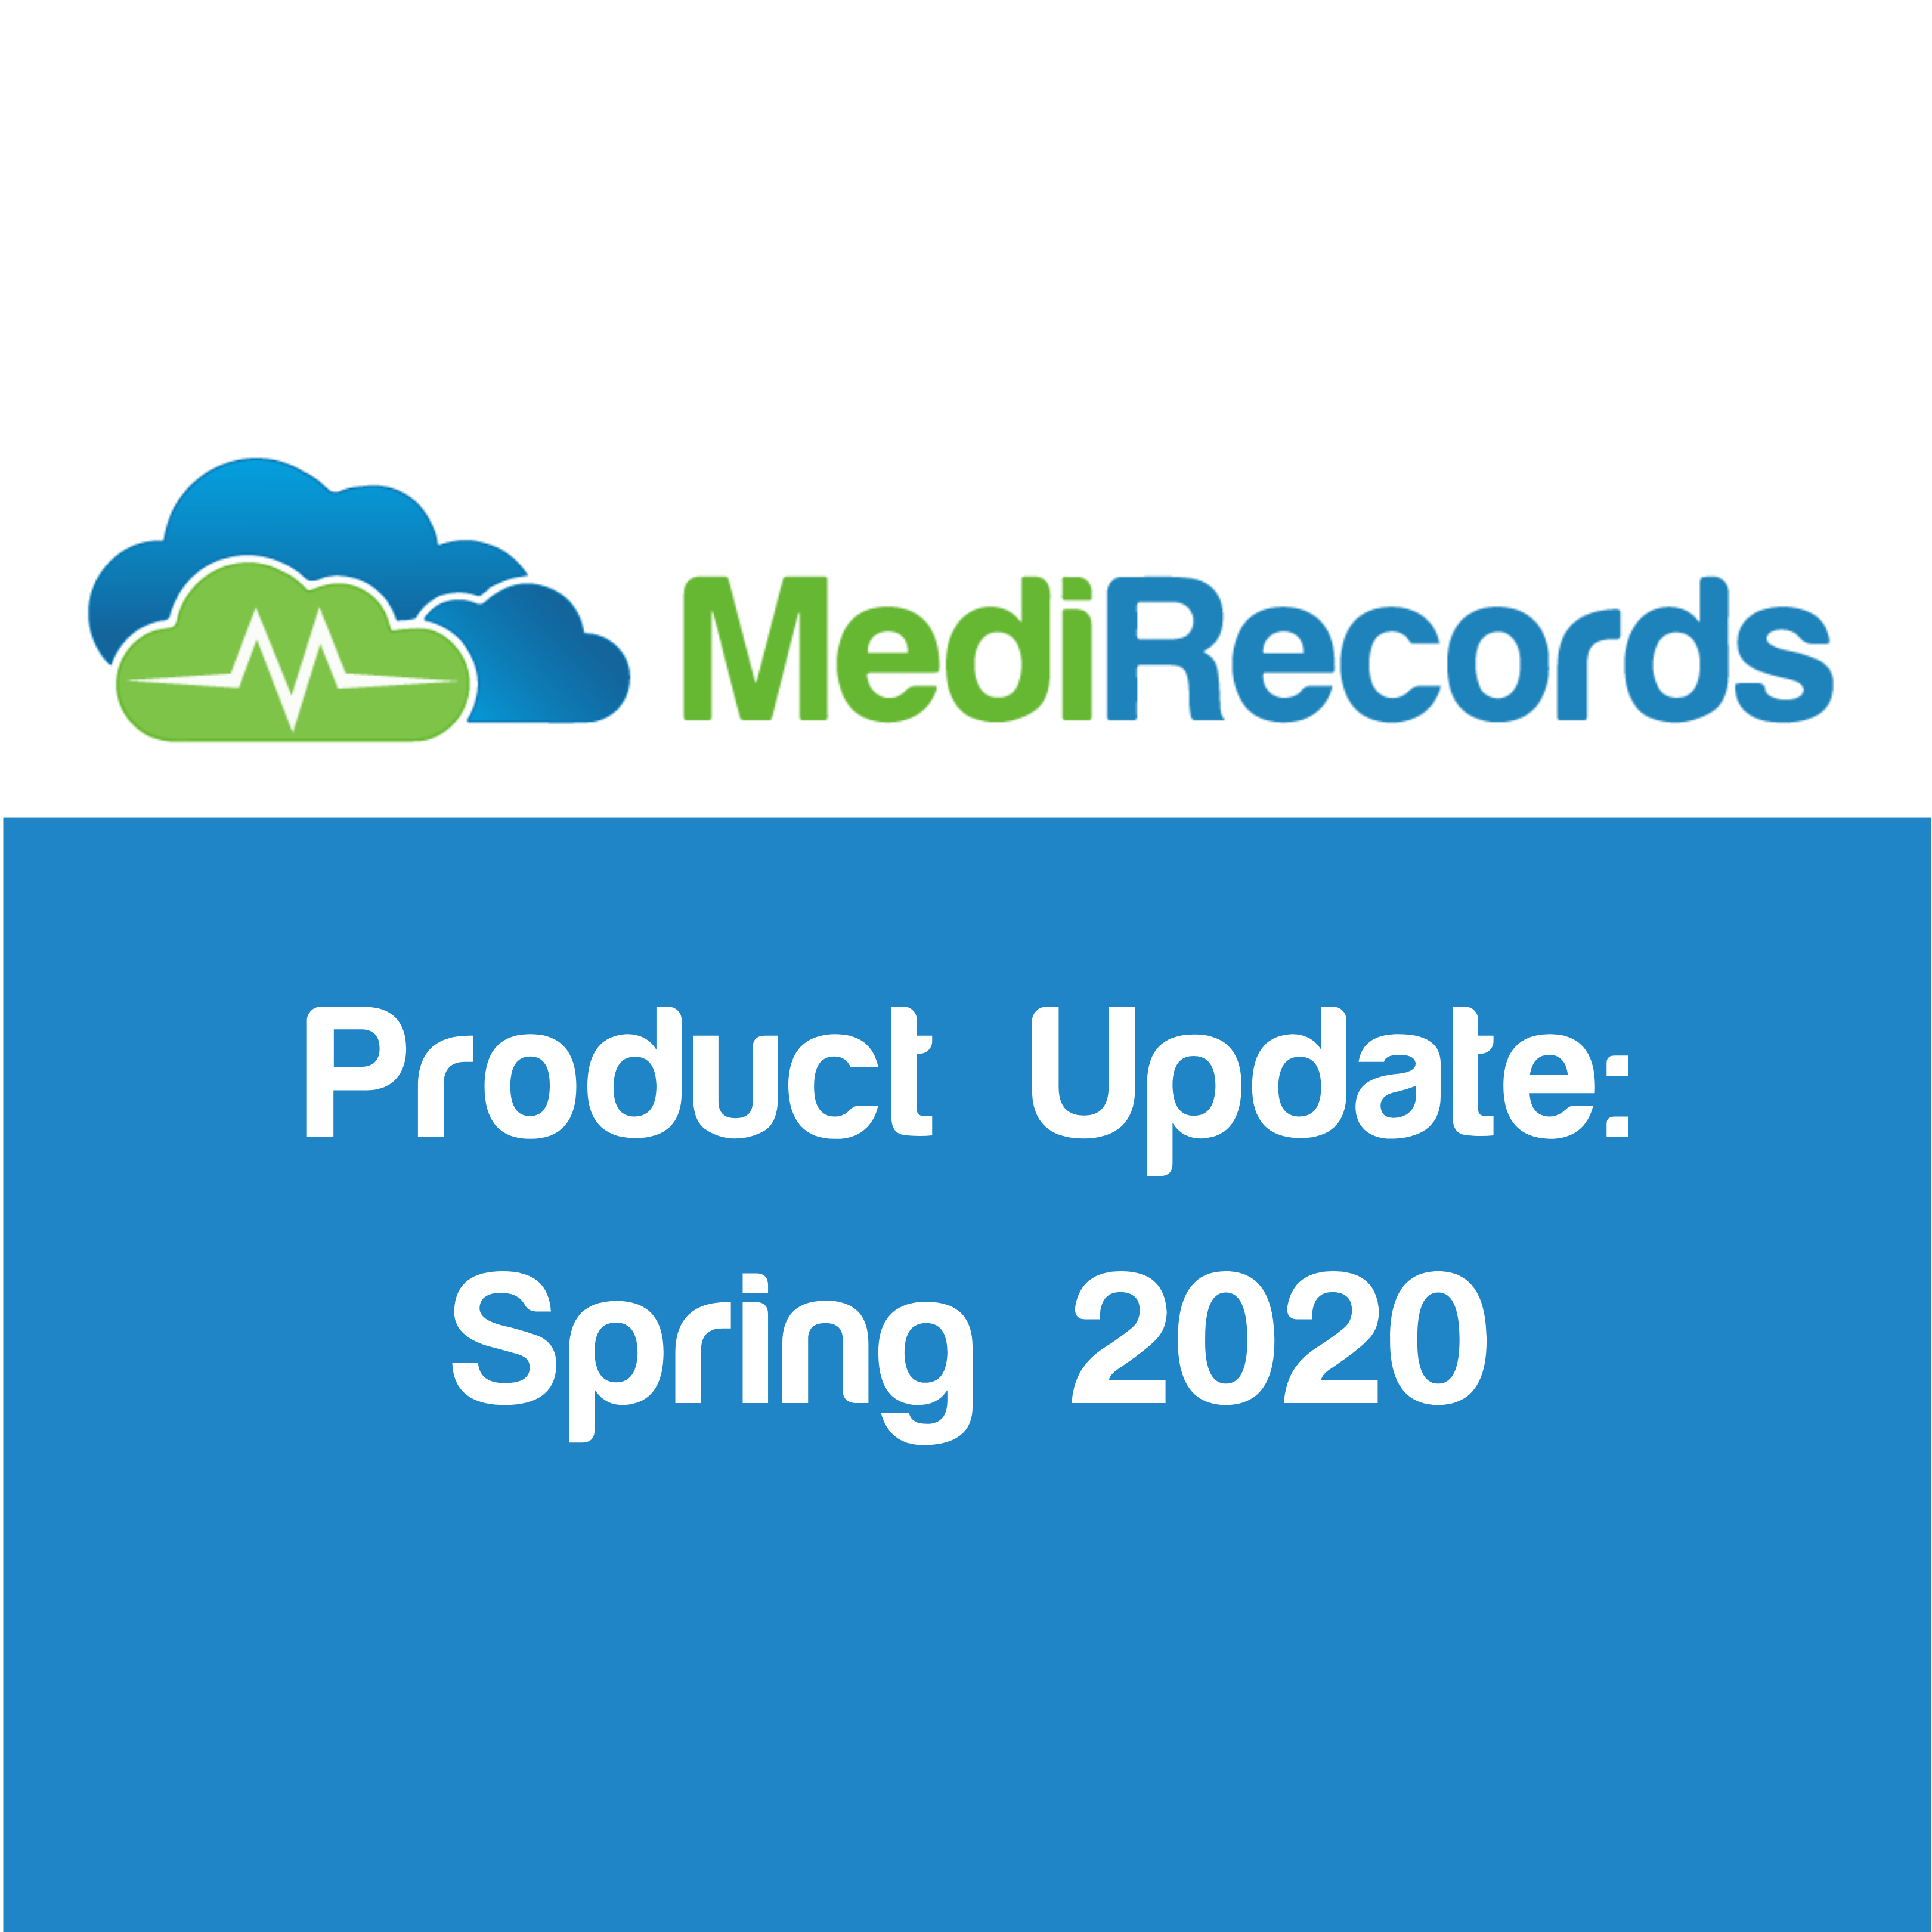 MediRecords Product Update November 2020